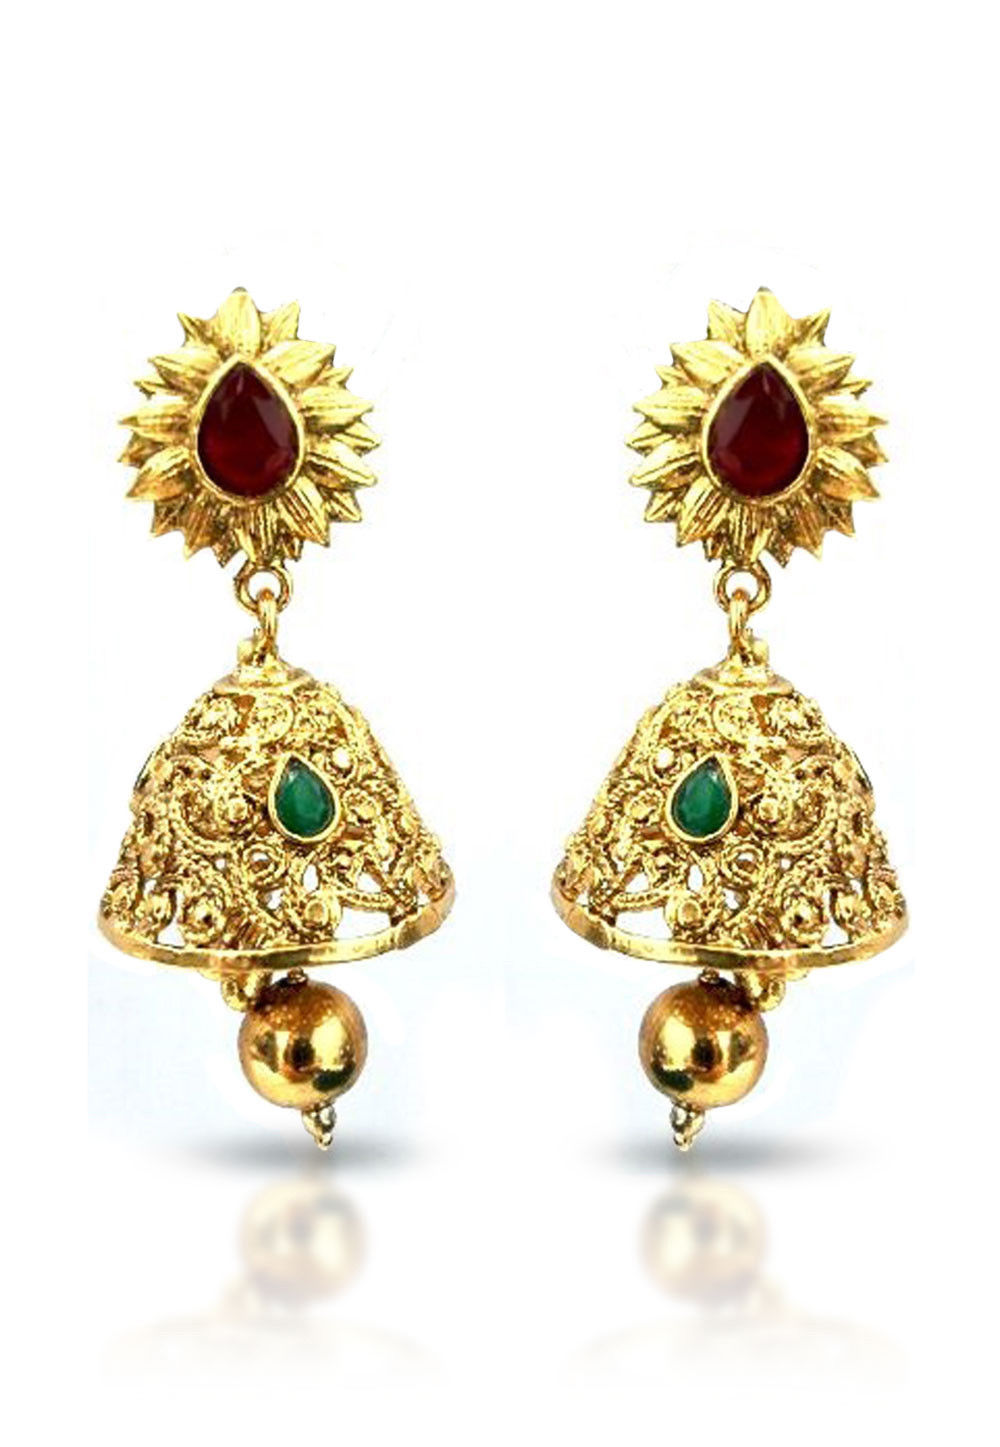 Stone Studded Earring in Golden